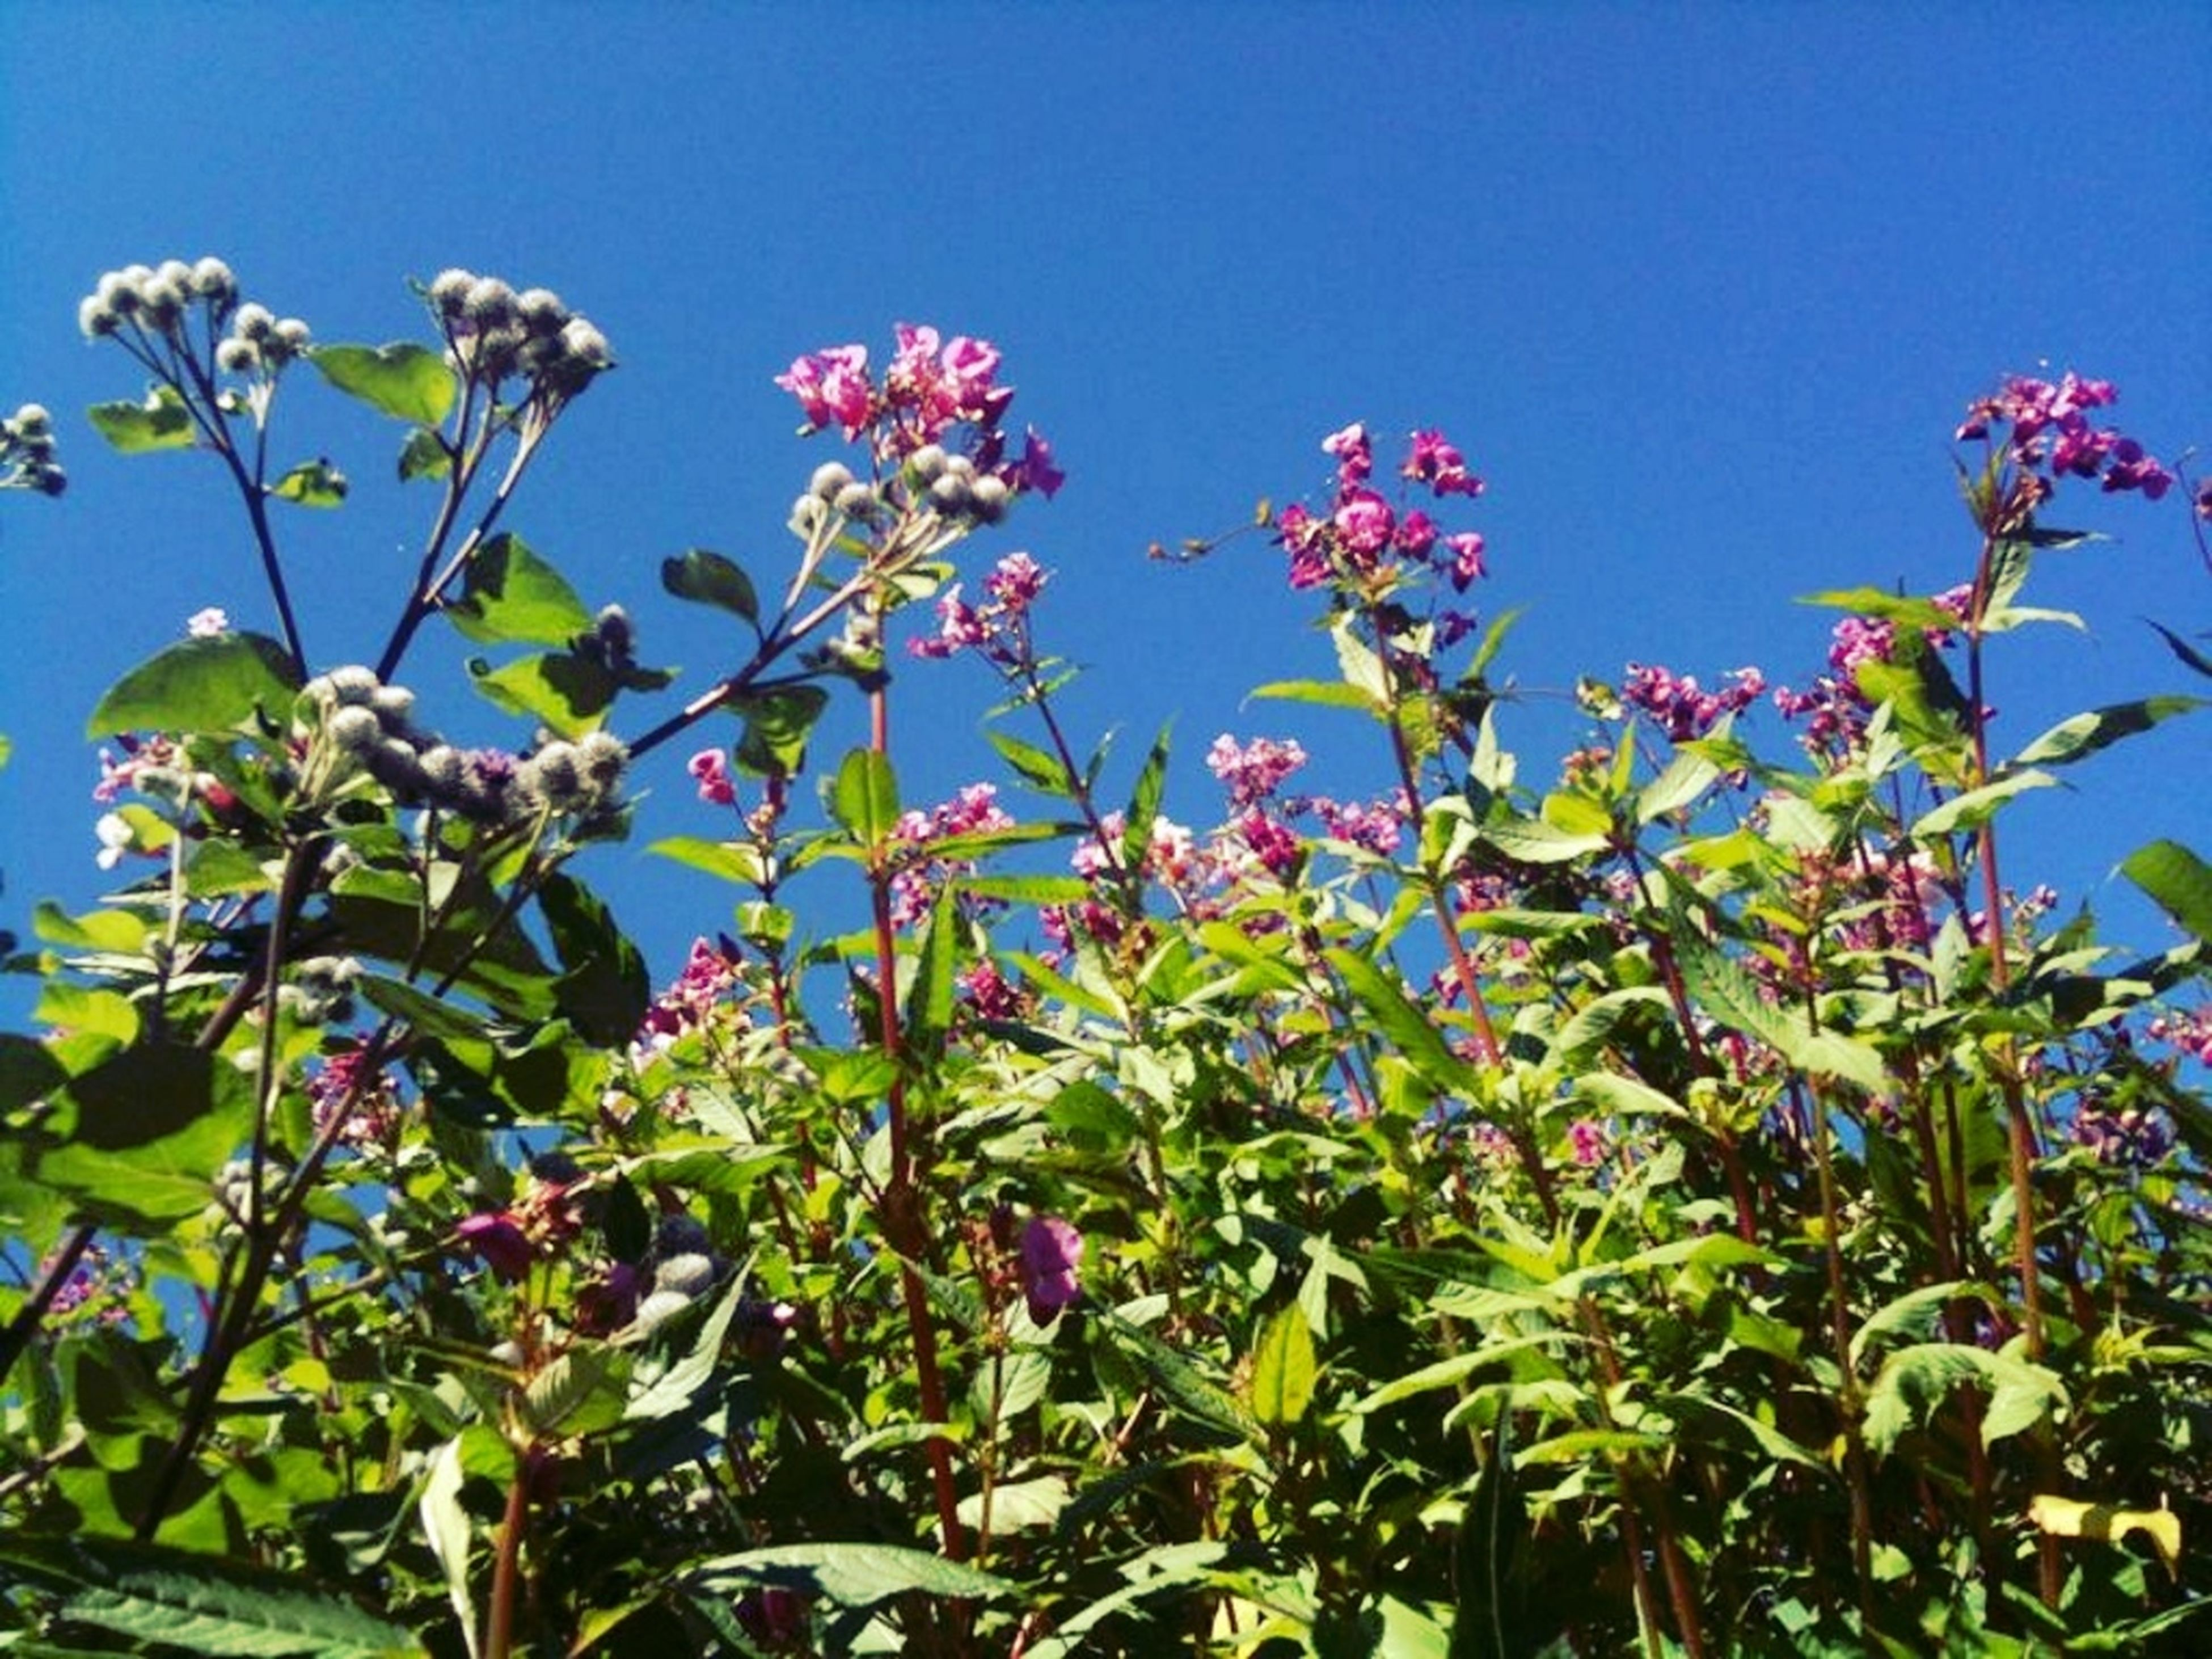 flower, growth, freshness, clear sky, fragility, blue, beauty in nature, low angle view, plant, nature, blooming, petal, leaf, in bloom, stem, pink color, blossom, copy space, day, sunlight